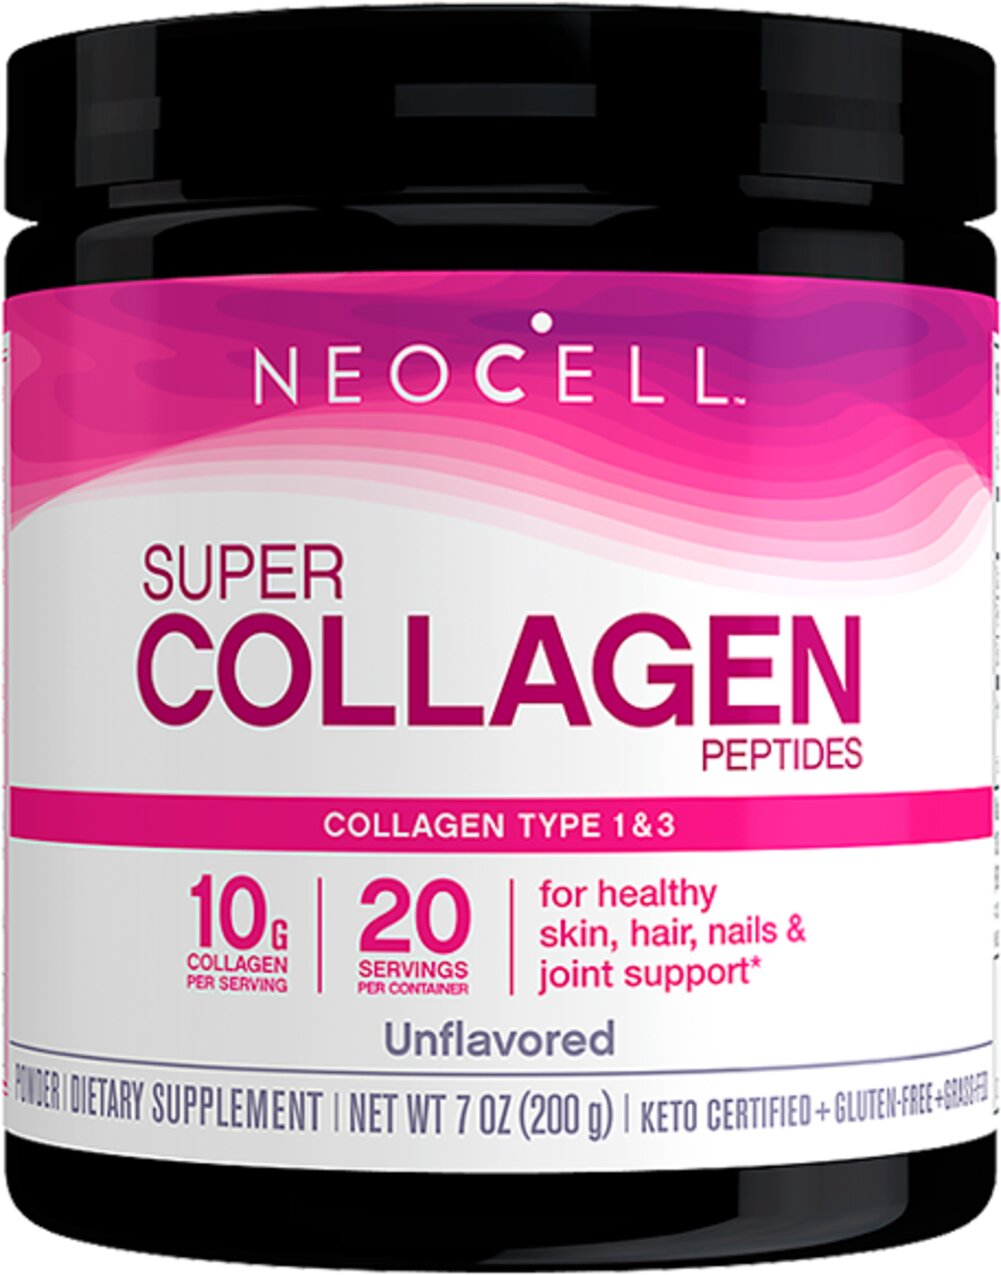 Super Collagen Peptides Type 1 & 3 Thumbnail Alternate Bottle View